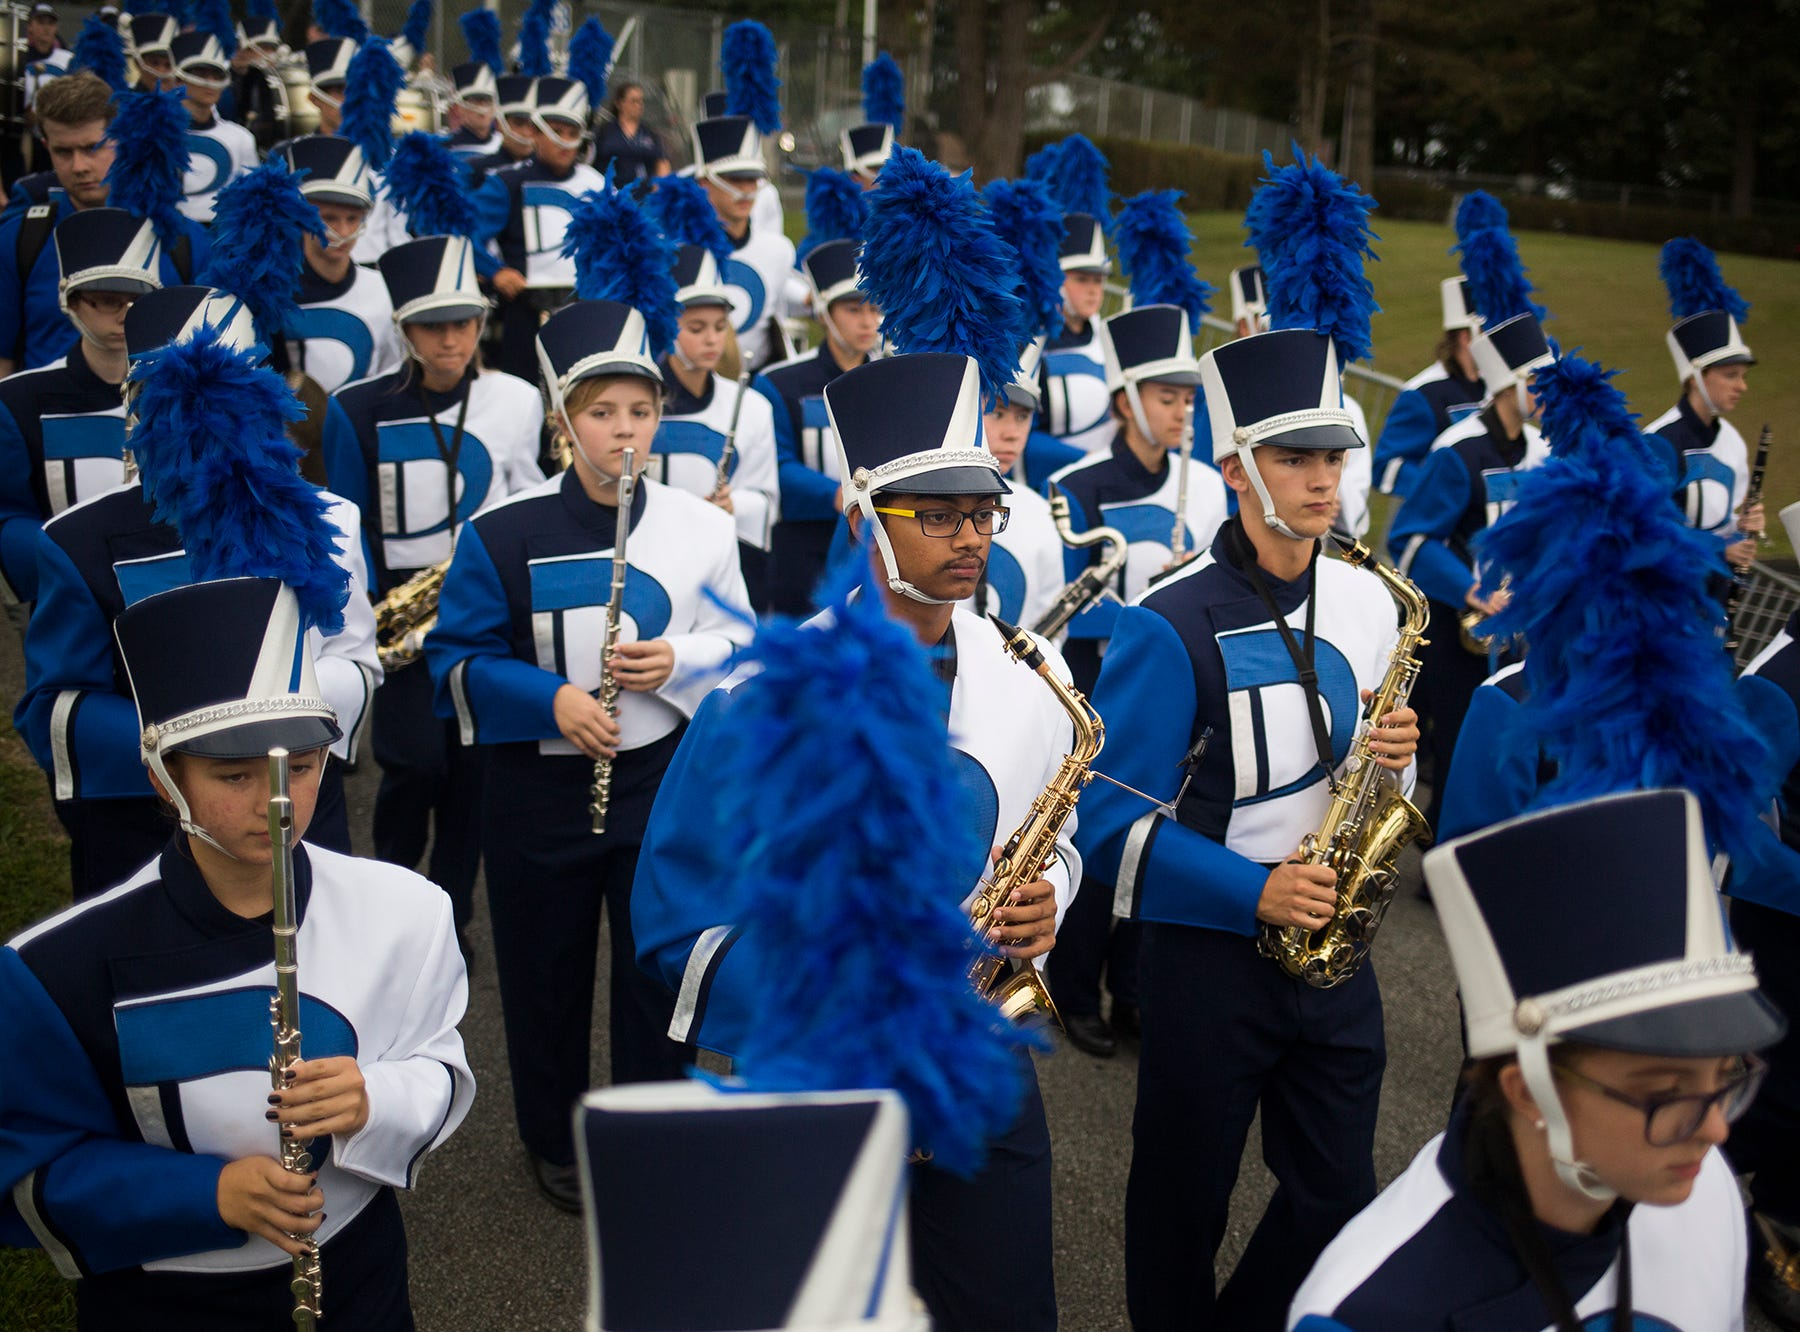 The Dallastown Area High School marching band enters the stadium prior to the game. Dallastown defeats Penn Manor 42-7 in football at Dallastown Area High School in Dallastown, Friday, September 7, 2018.